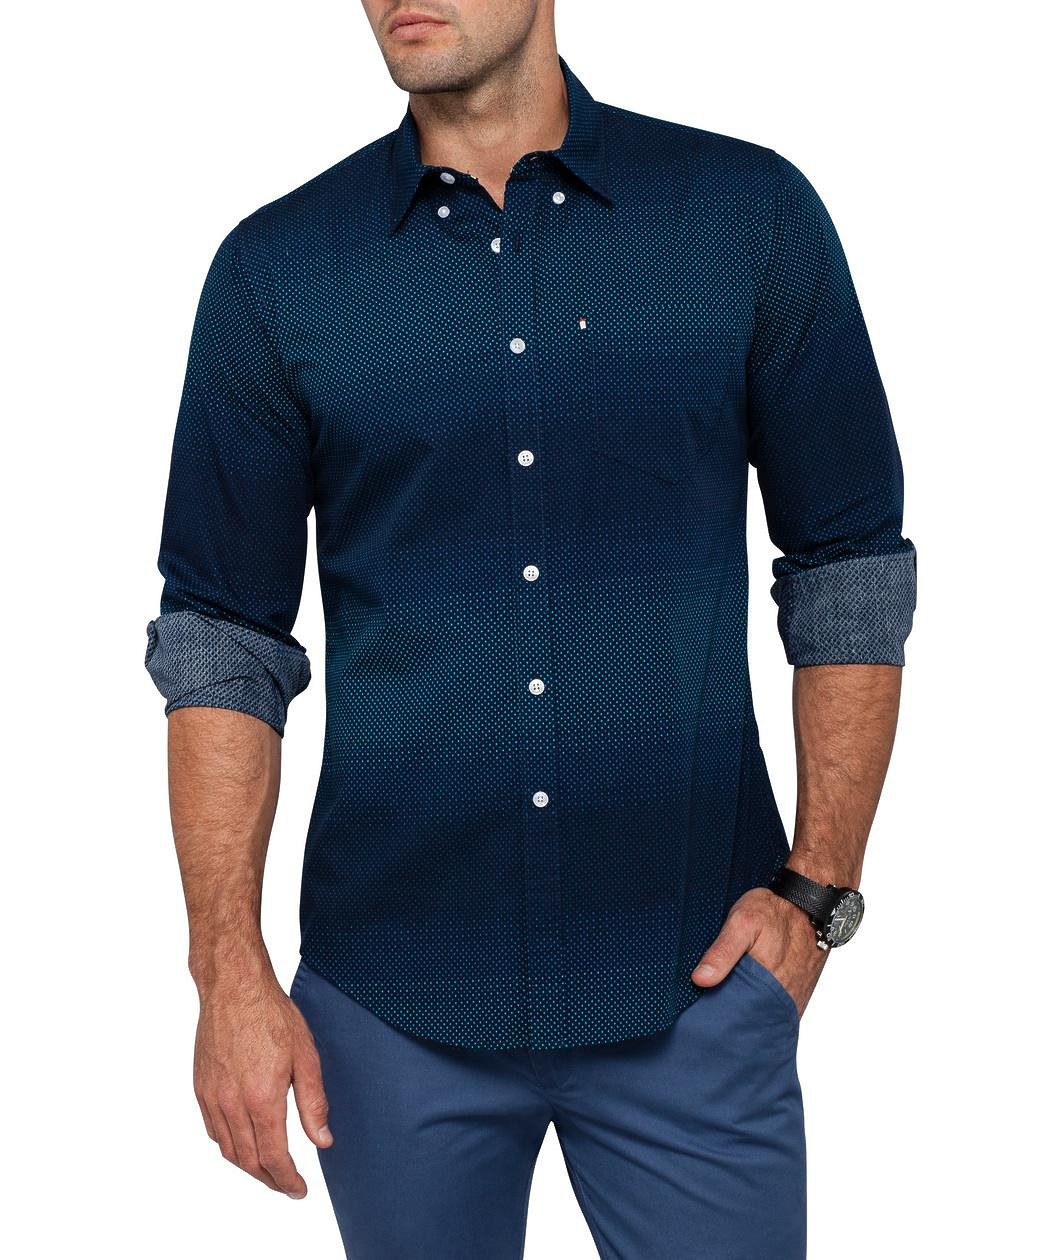 Tommy Hilfiger  Buy Tommy Hilfiger Products Online in